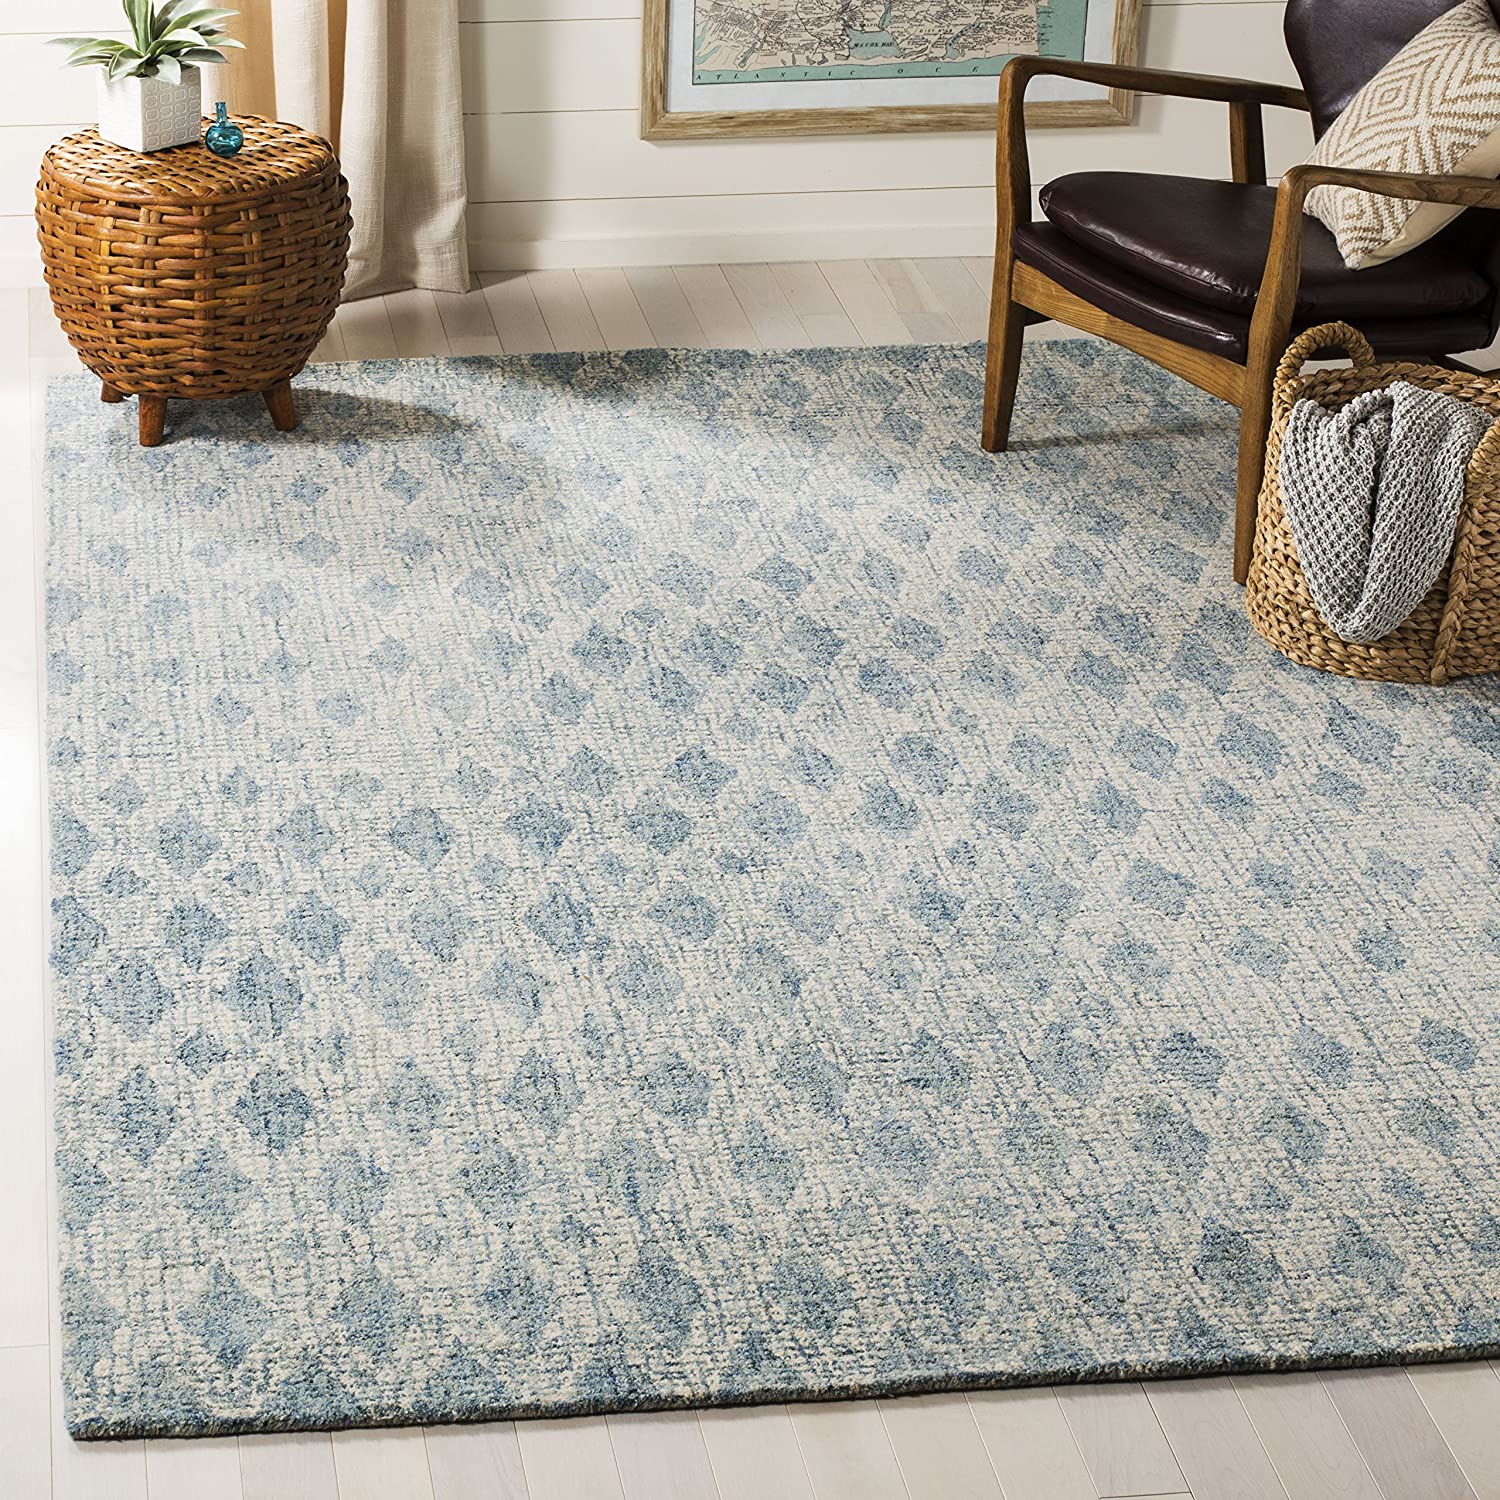 Amazon Com Safavieh Abstract Collection Abt206a Handmade Premium Wool Area Rug 9 X 12 Ivory Blue Furniture Decor